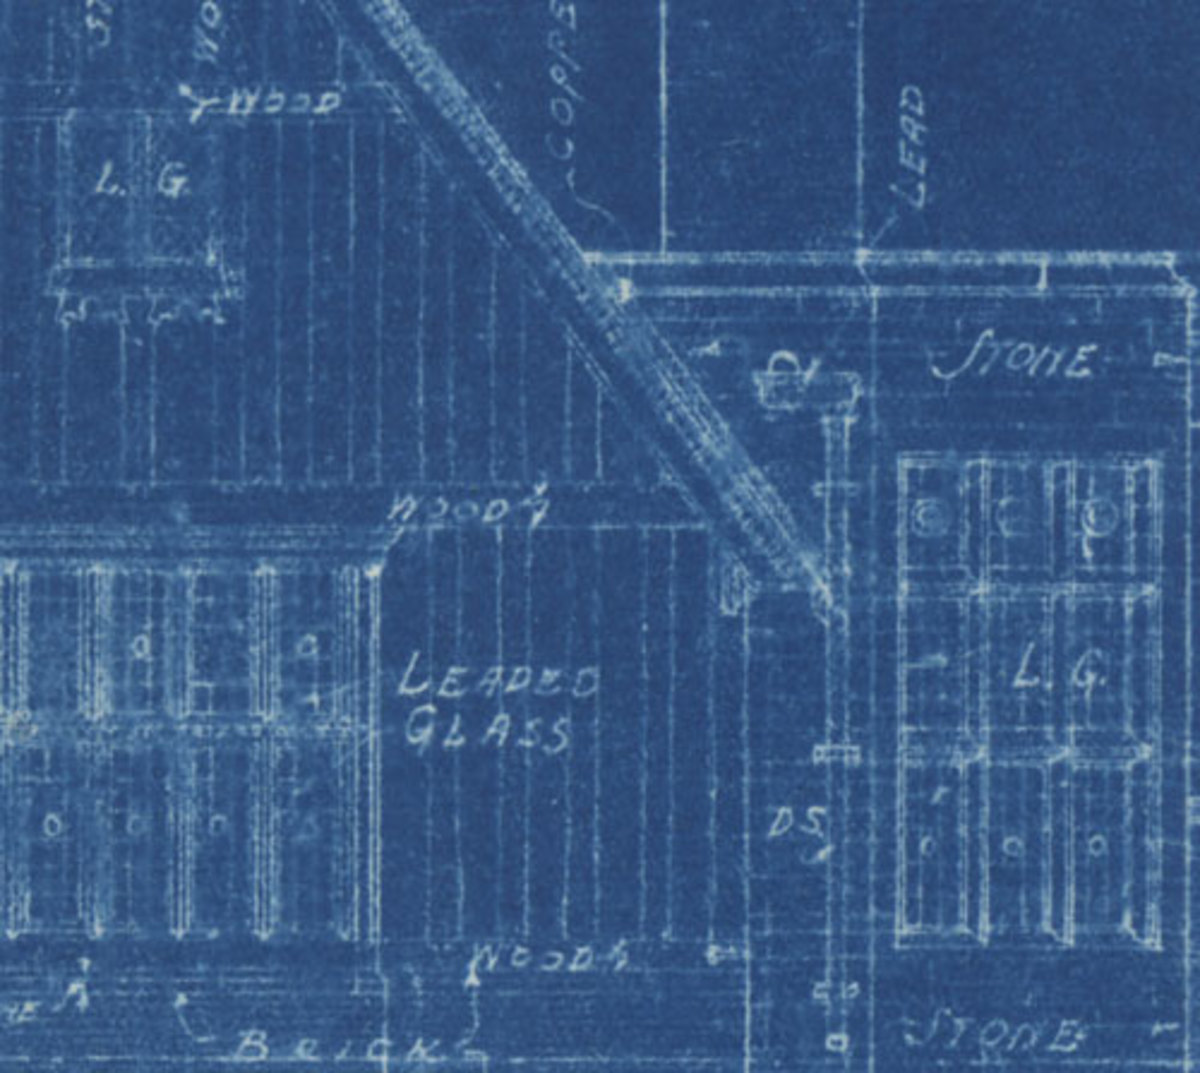 Architecture Plan Copying: Why Blueprints Aren't Blue Now